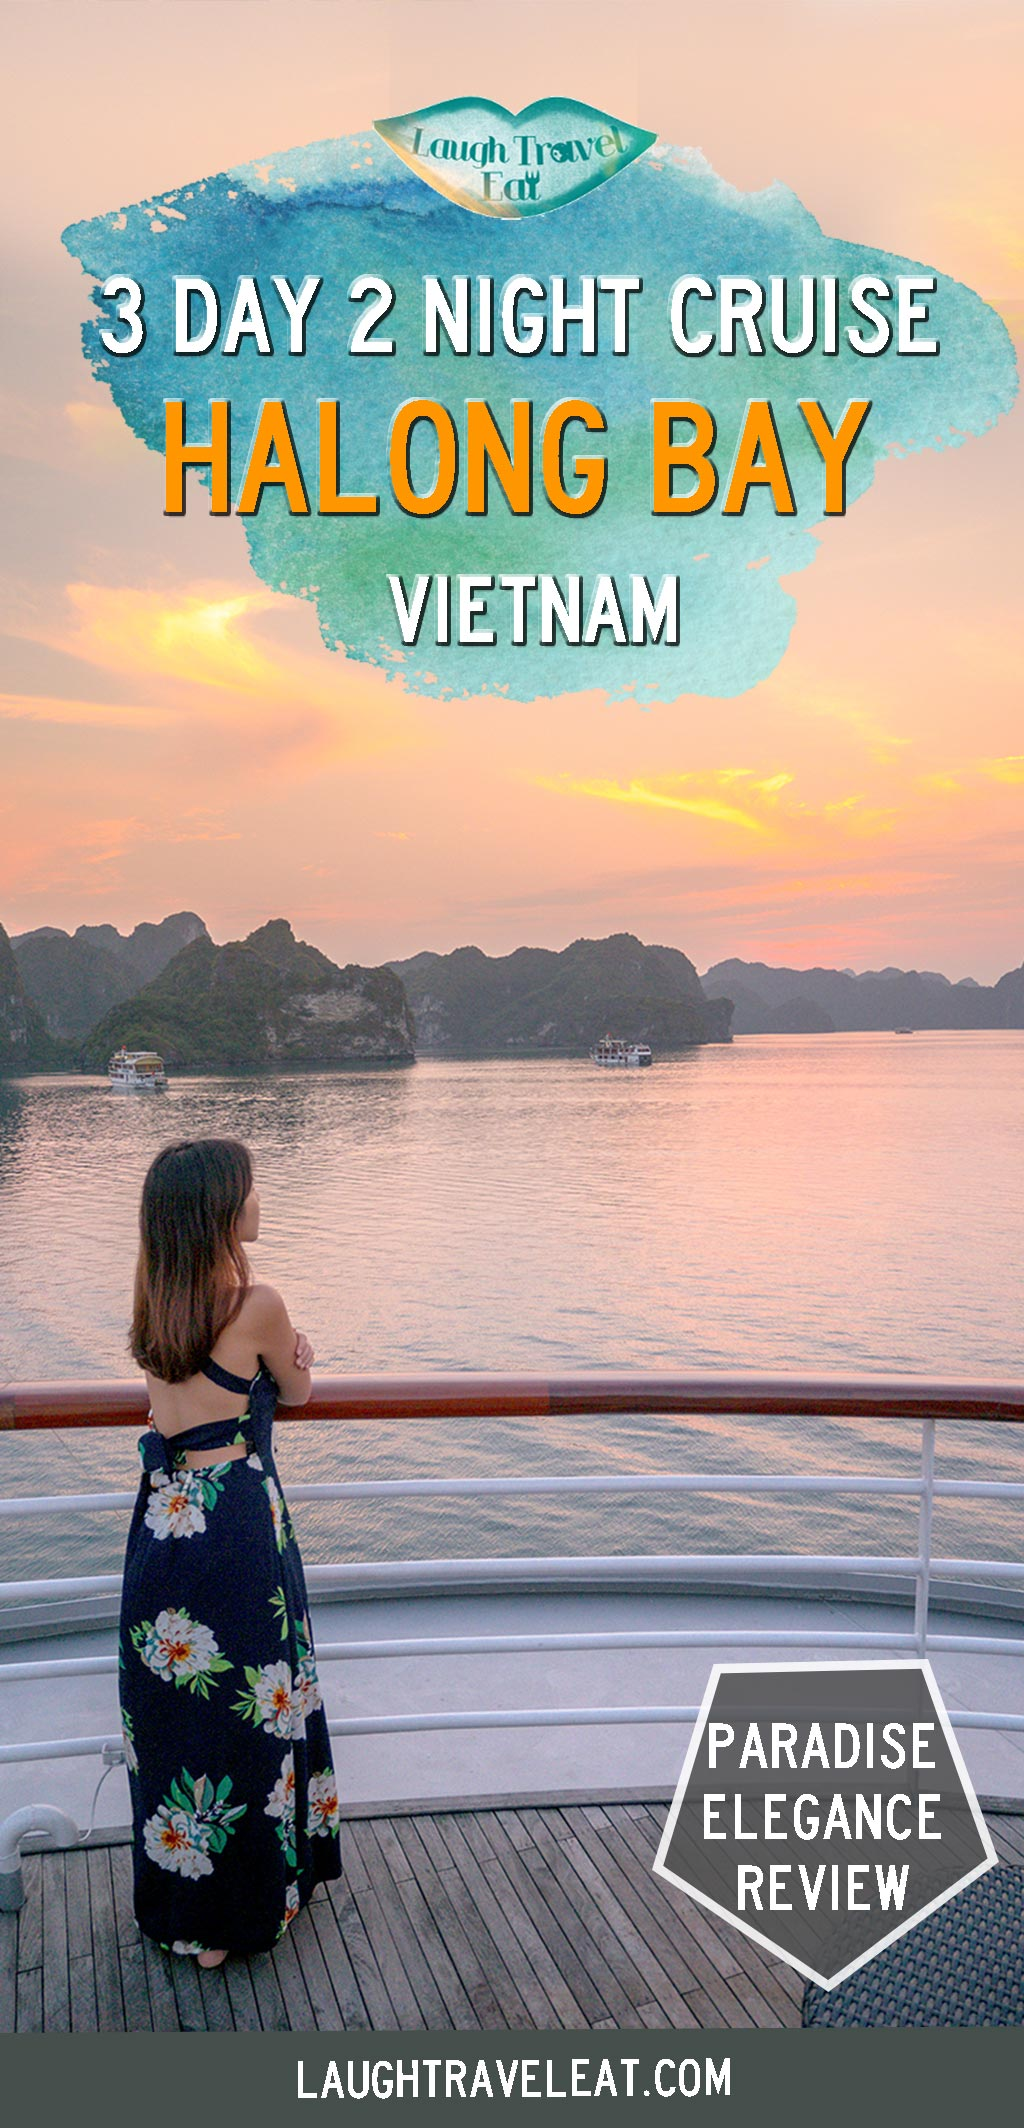 Want to go on a Halong Bay overnight cruise? Paradise Elegance might be perfect for you: here's a review on this Halong Bay trip #halongbay #cruise #review #vietnam